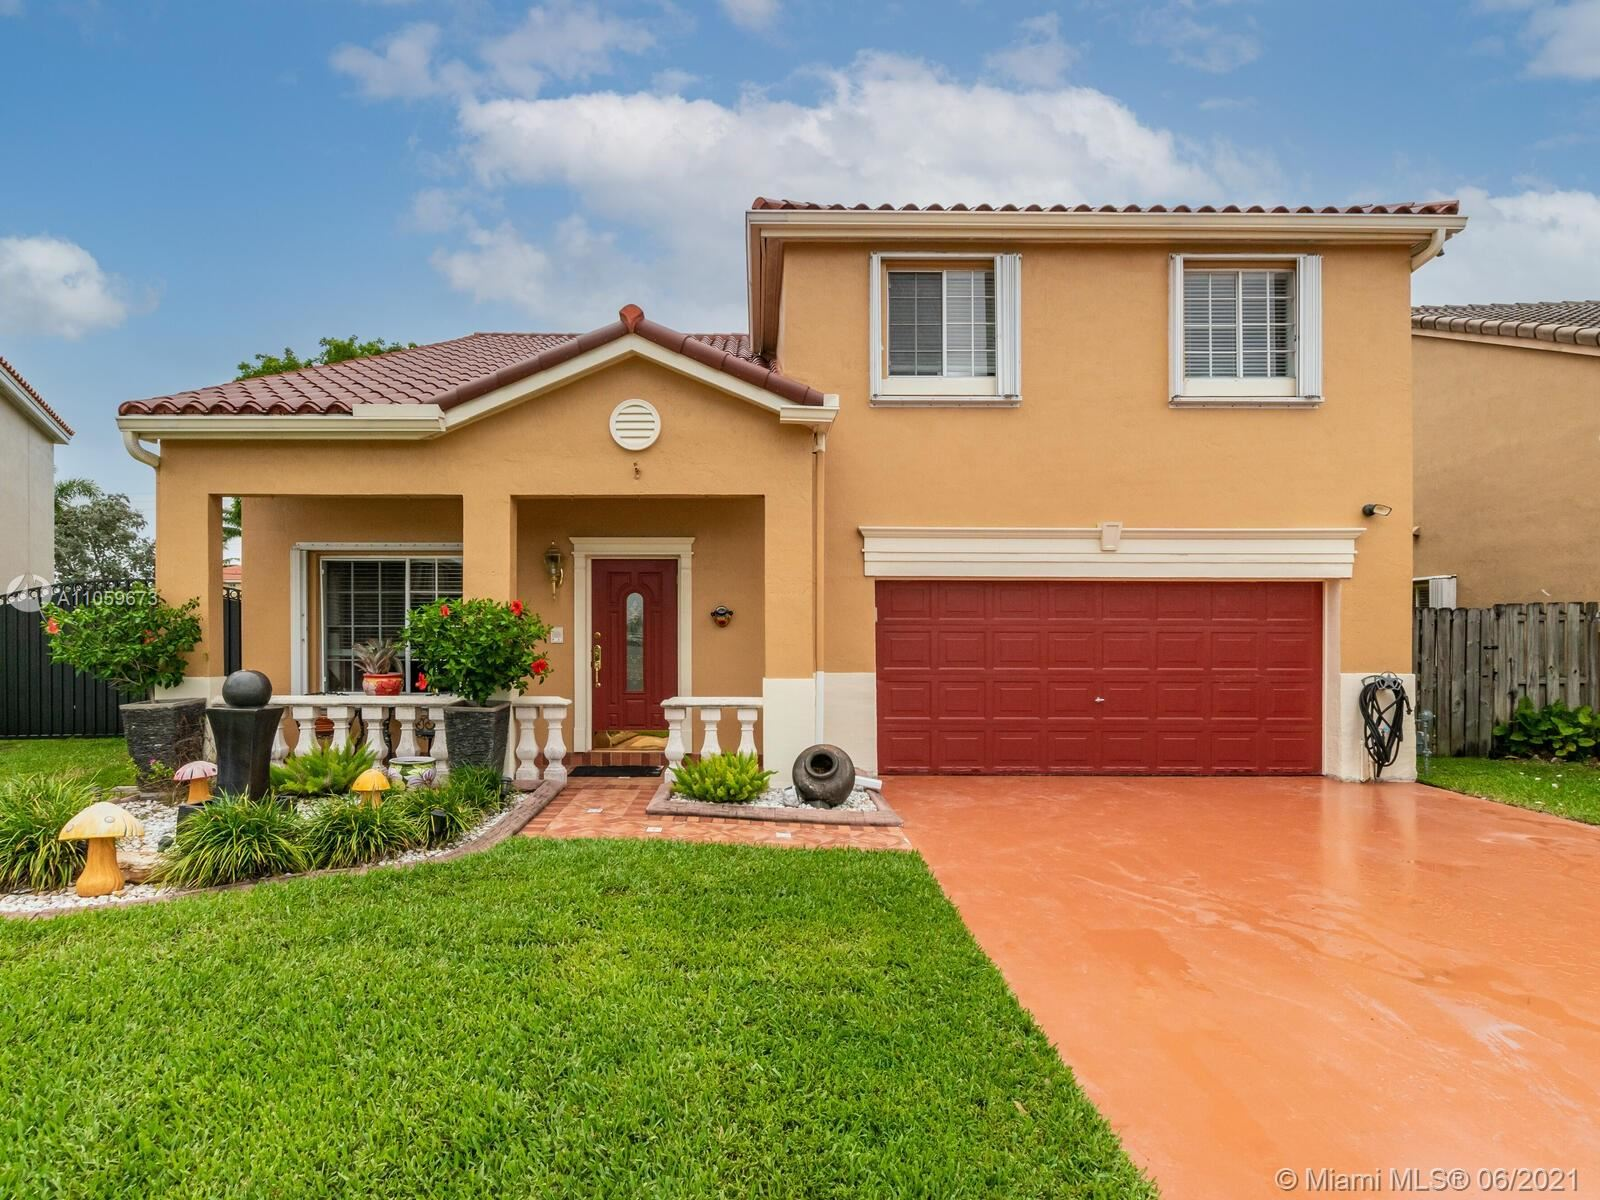 Photo of 15839 SW 72nd Ter, Miami, FL 33193 (MLS # A11059673)